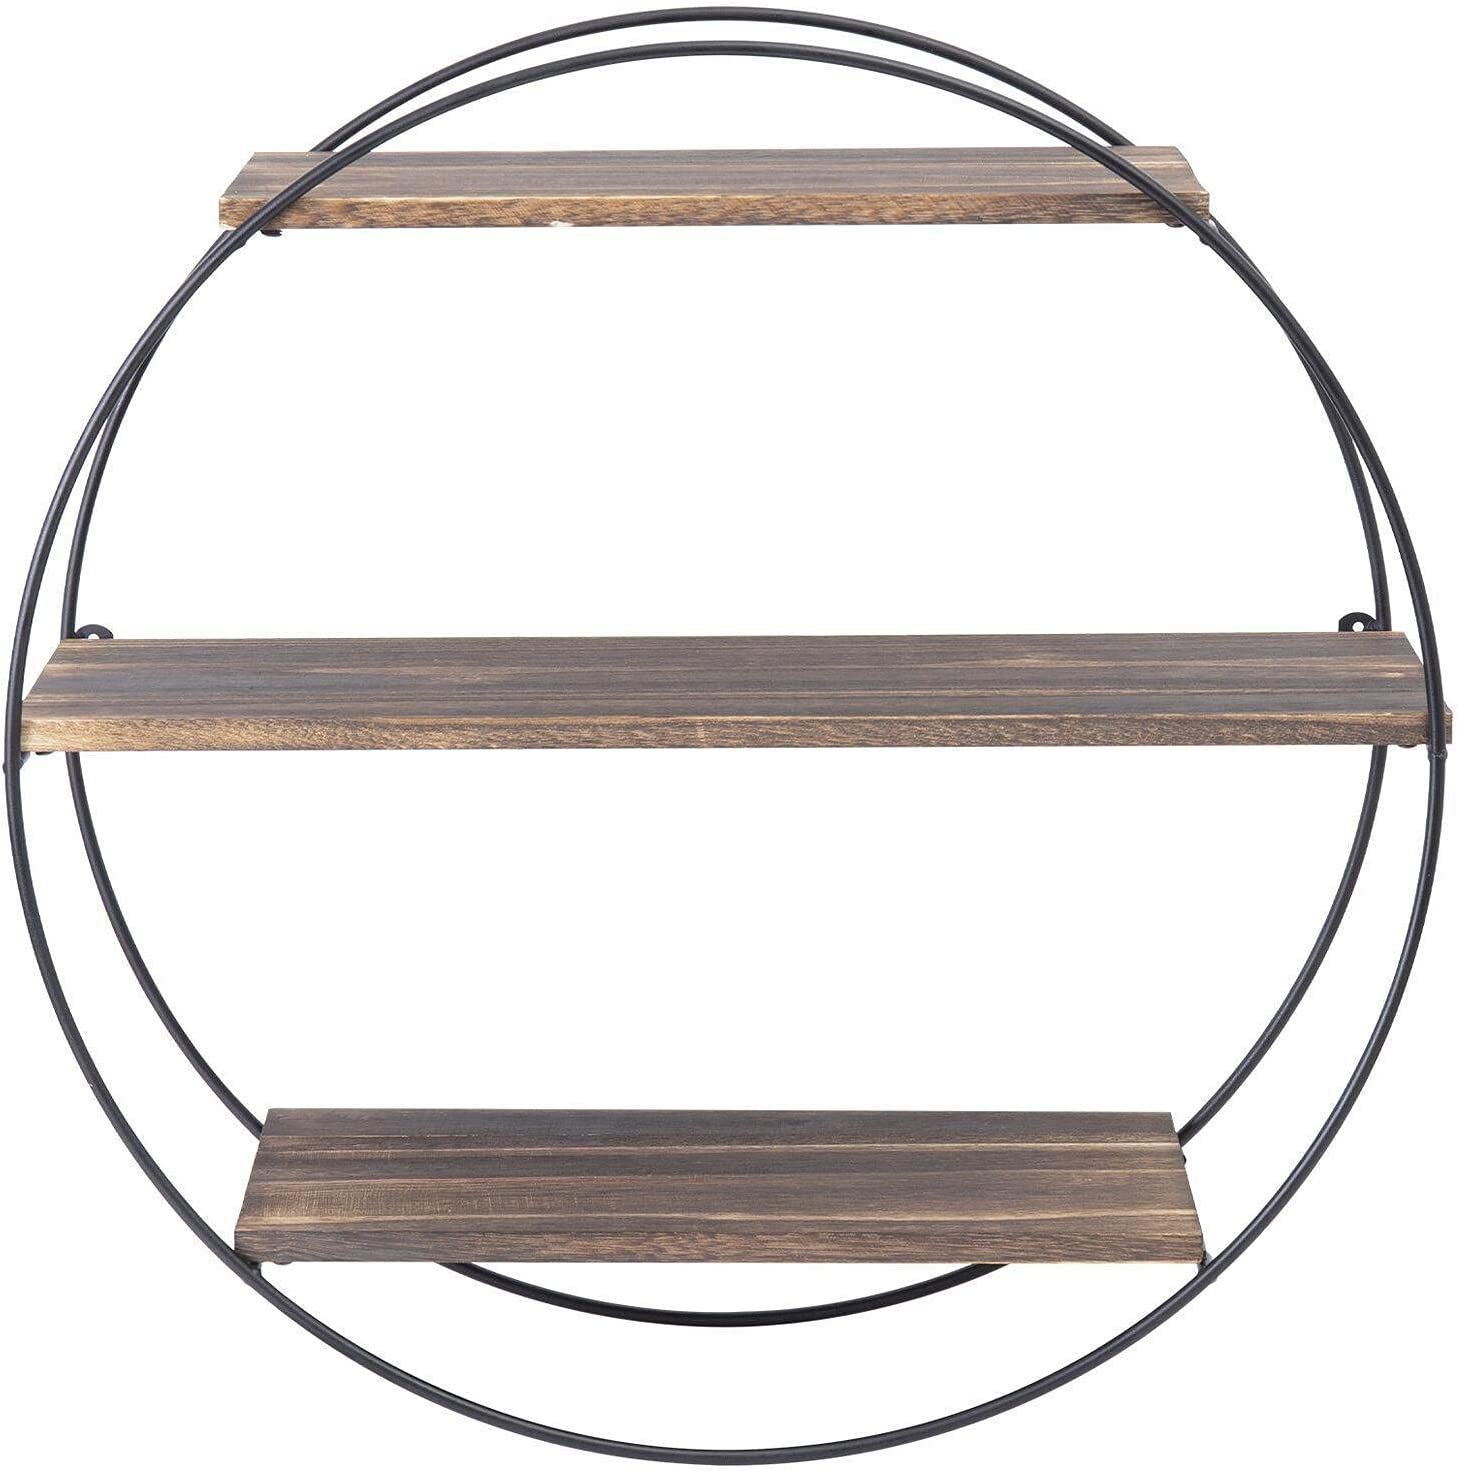 3 Tier Max 60% OFF Geometric Floating Shelves Mounted D Hanging Wall Selling and selling